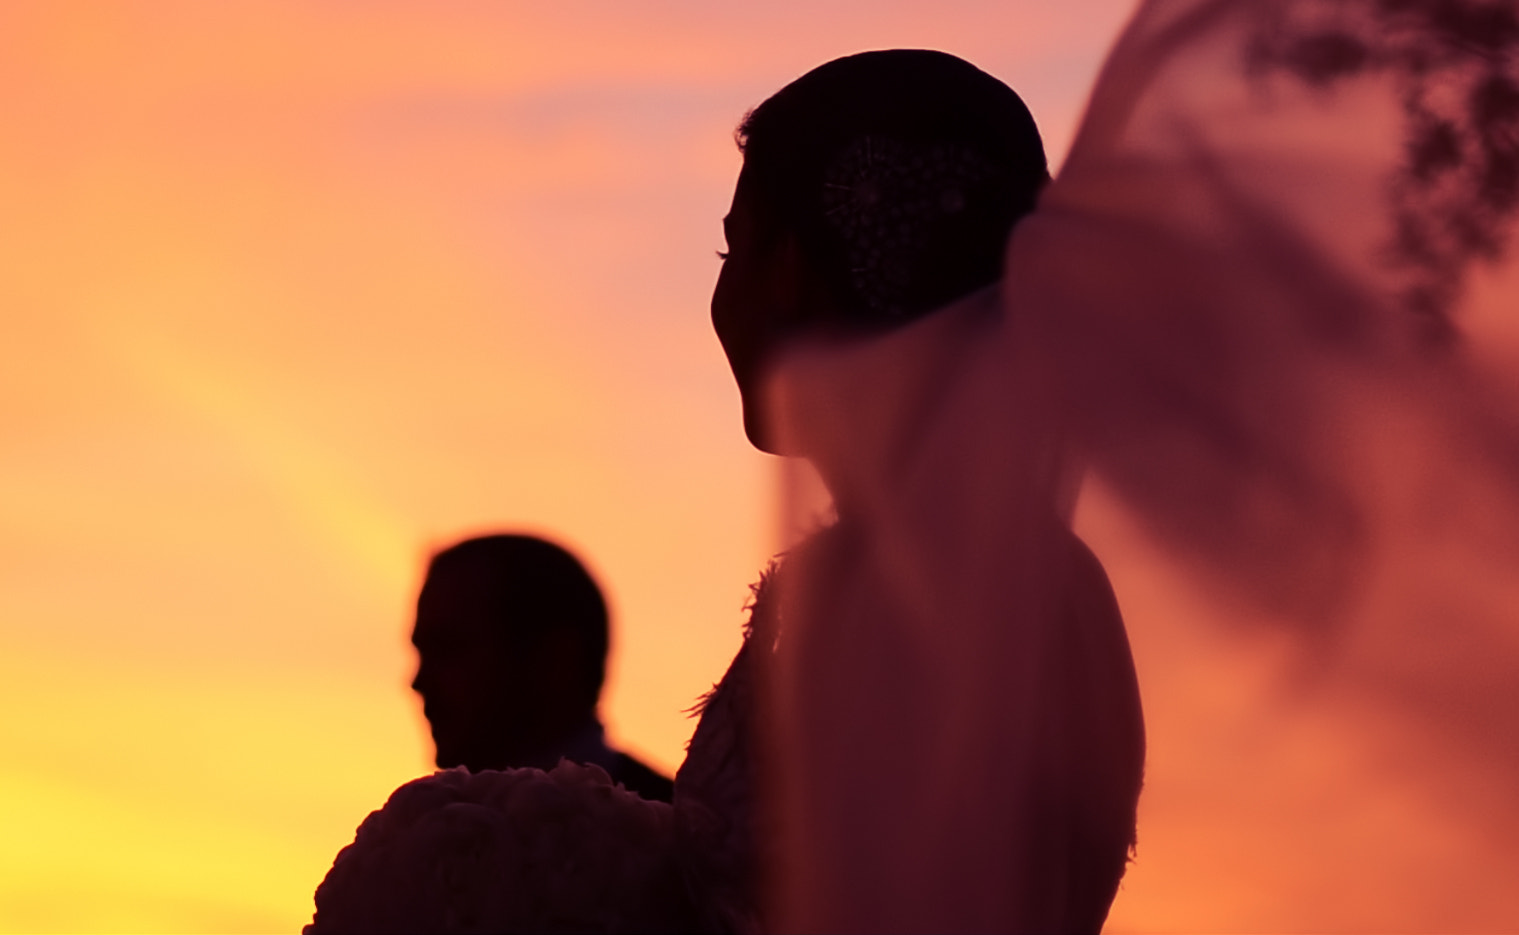 Photograph Newlyweds in the Sunset by Melissa Amengual on 500px